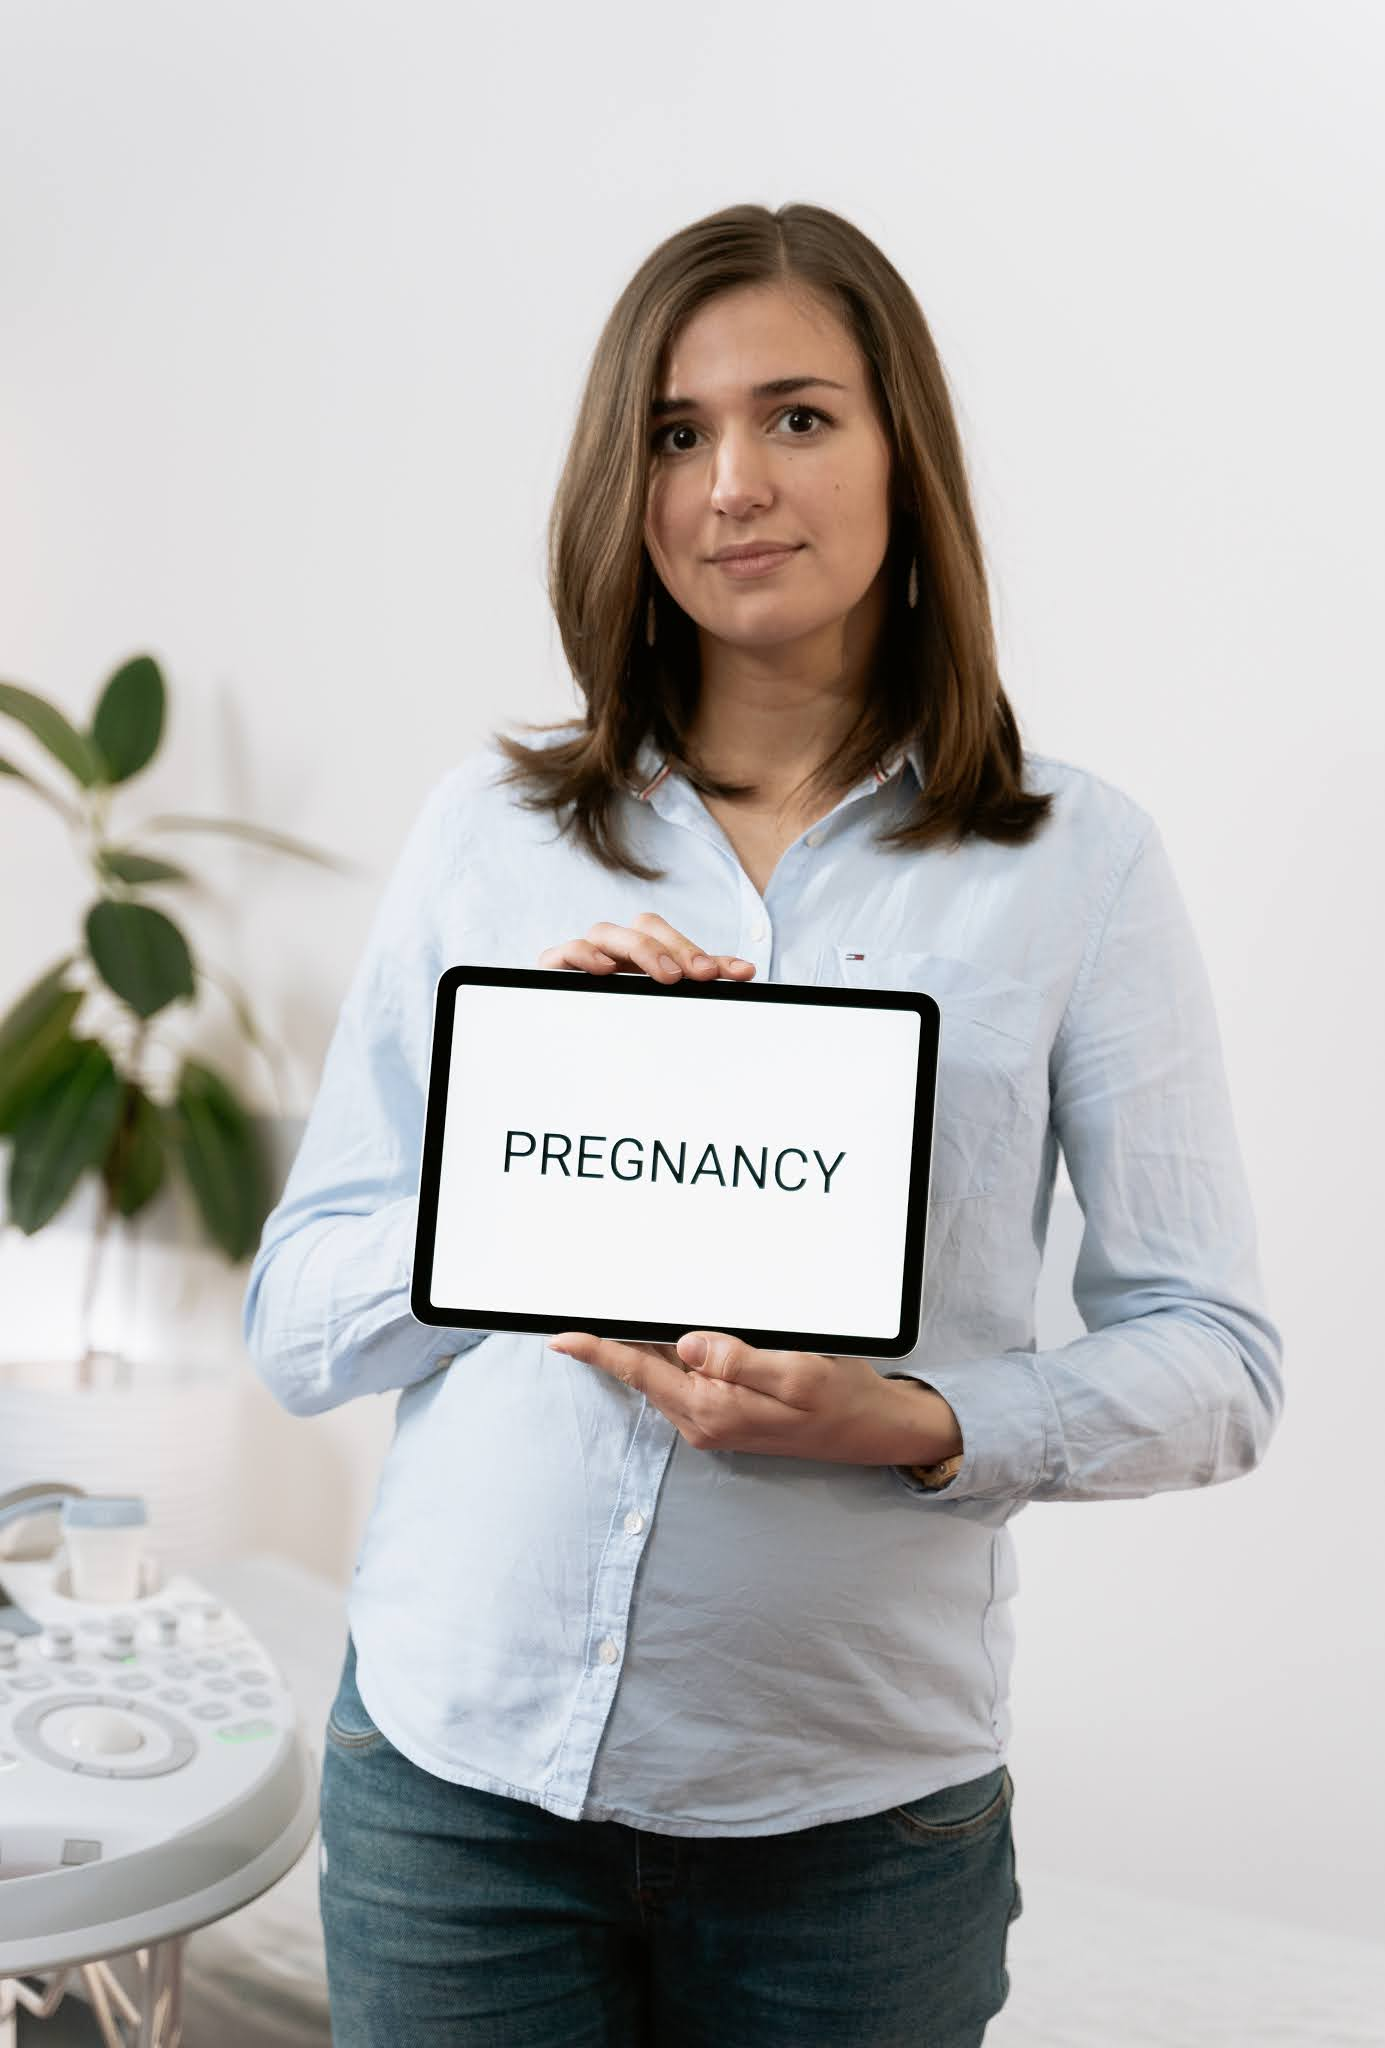 Best Five Pregnancy Insurance In The USA